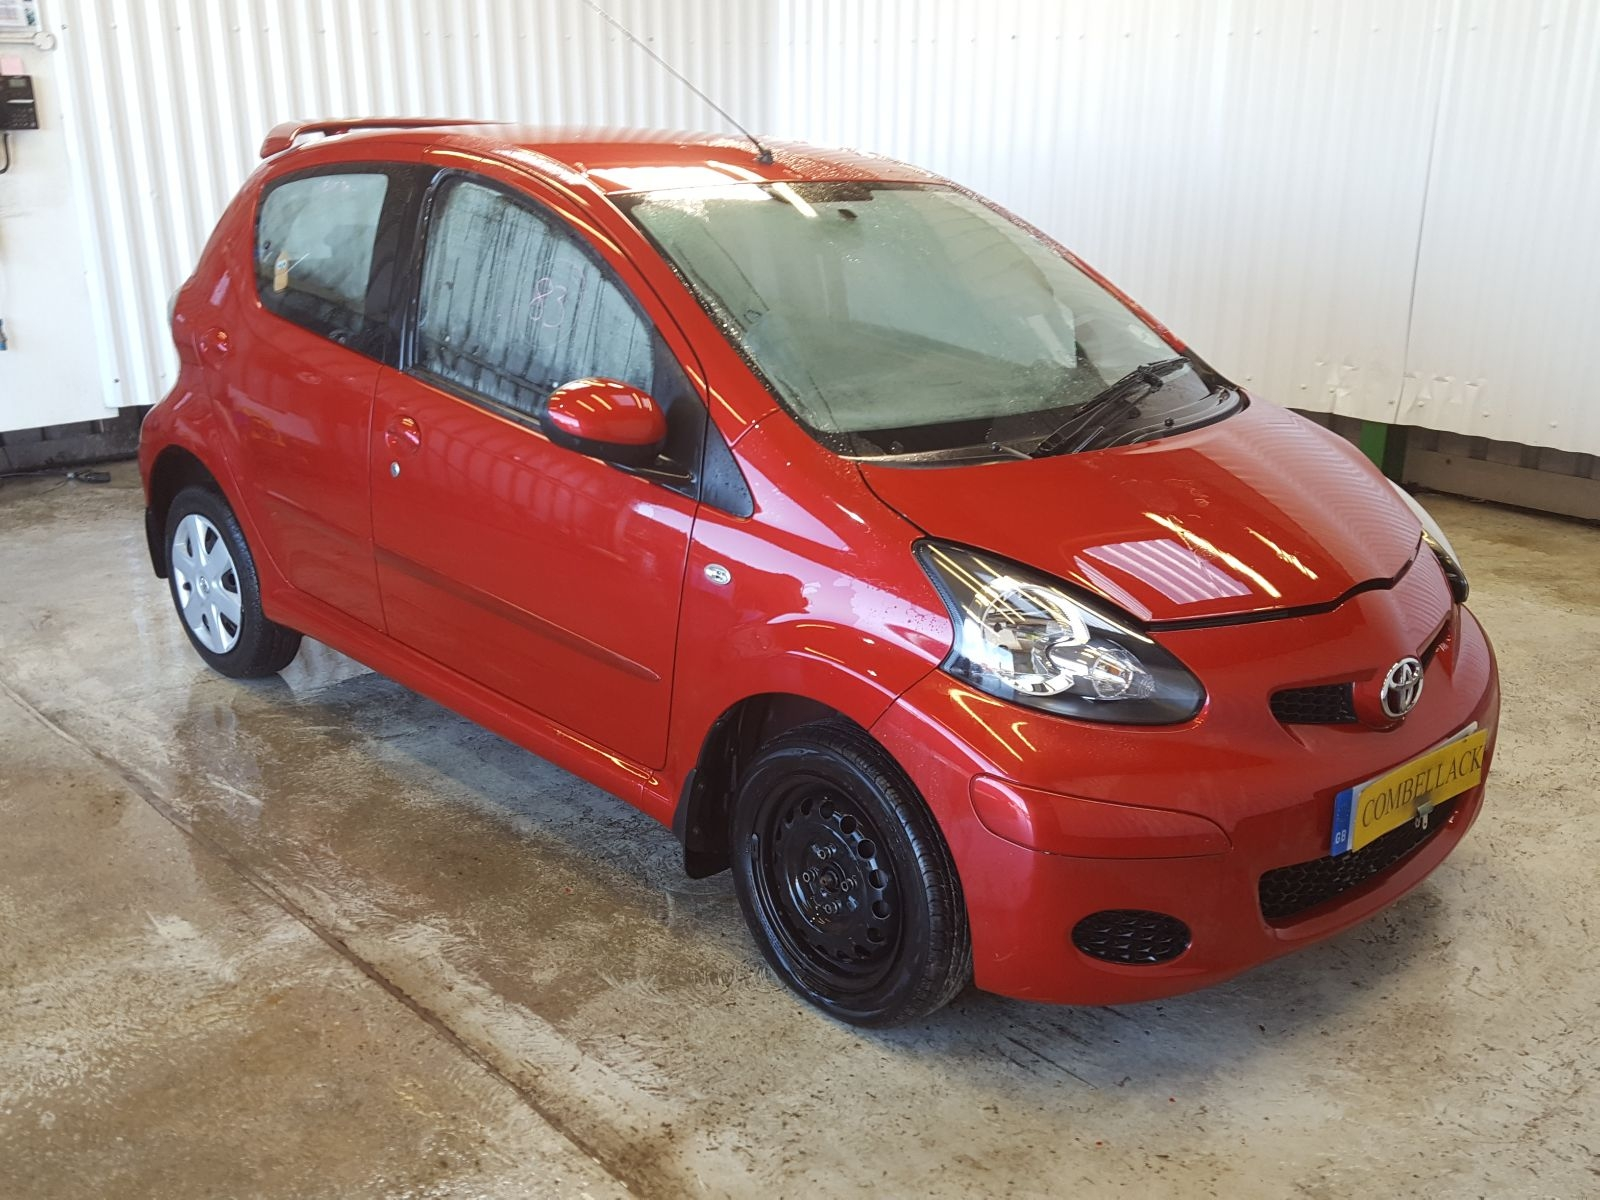 toyota aygo 2005 to 2012 ice 5 door hatchback breaking vehicles at combellack vehicle recyclers. Black Bedroom Furniture Sets. Home Design Ideas